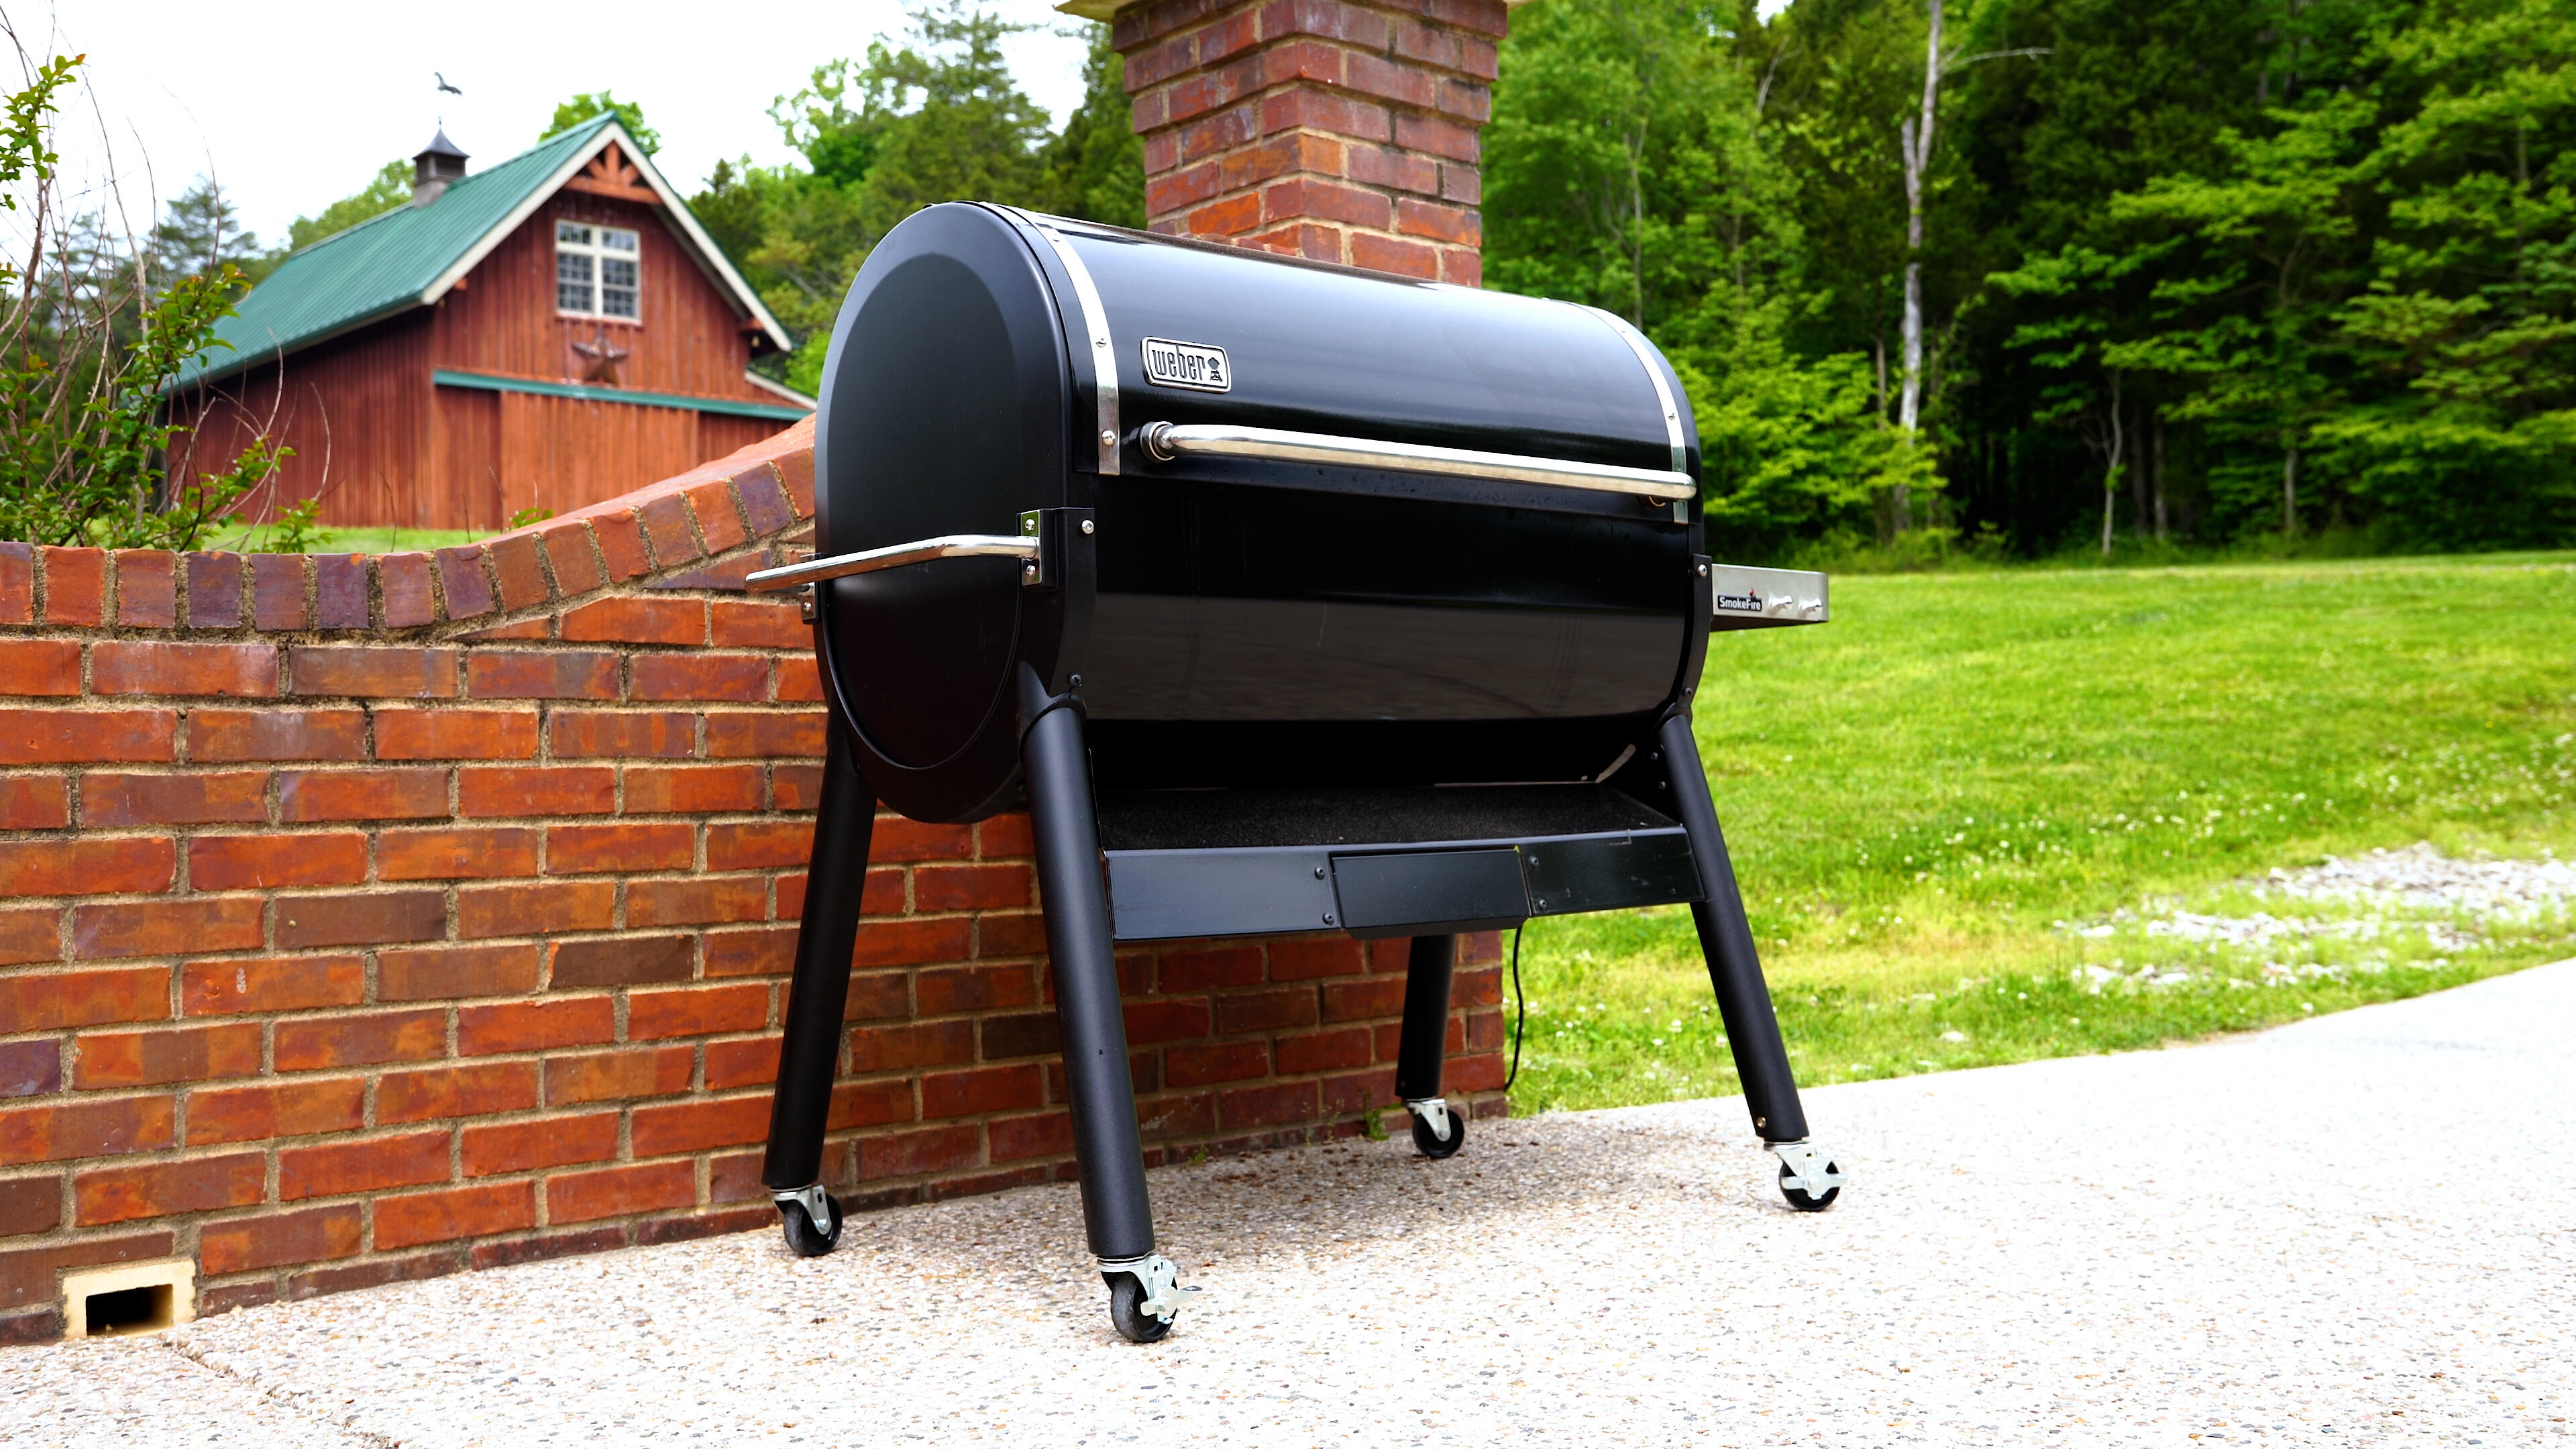 Video: Smoky grilling delights with the Weber SmokeFire EX6